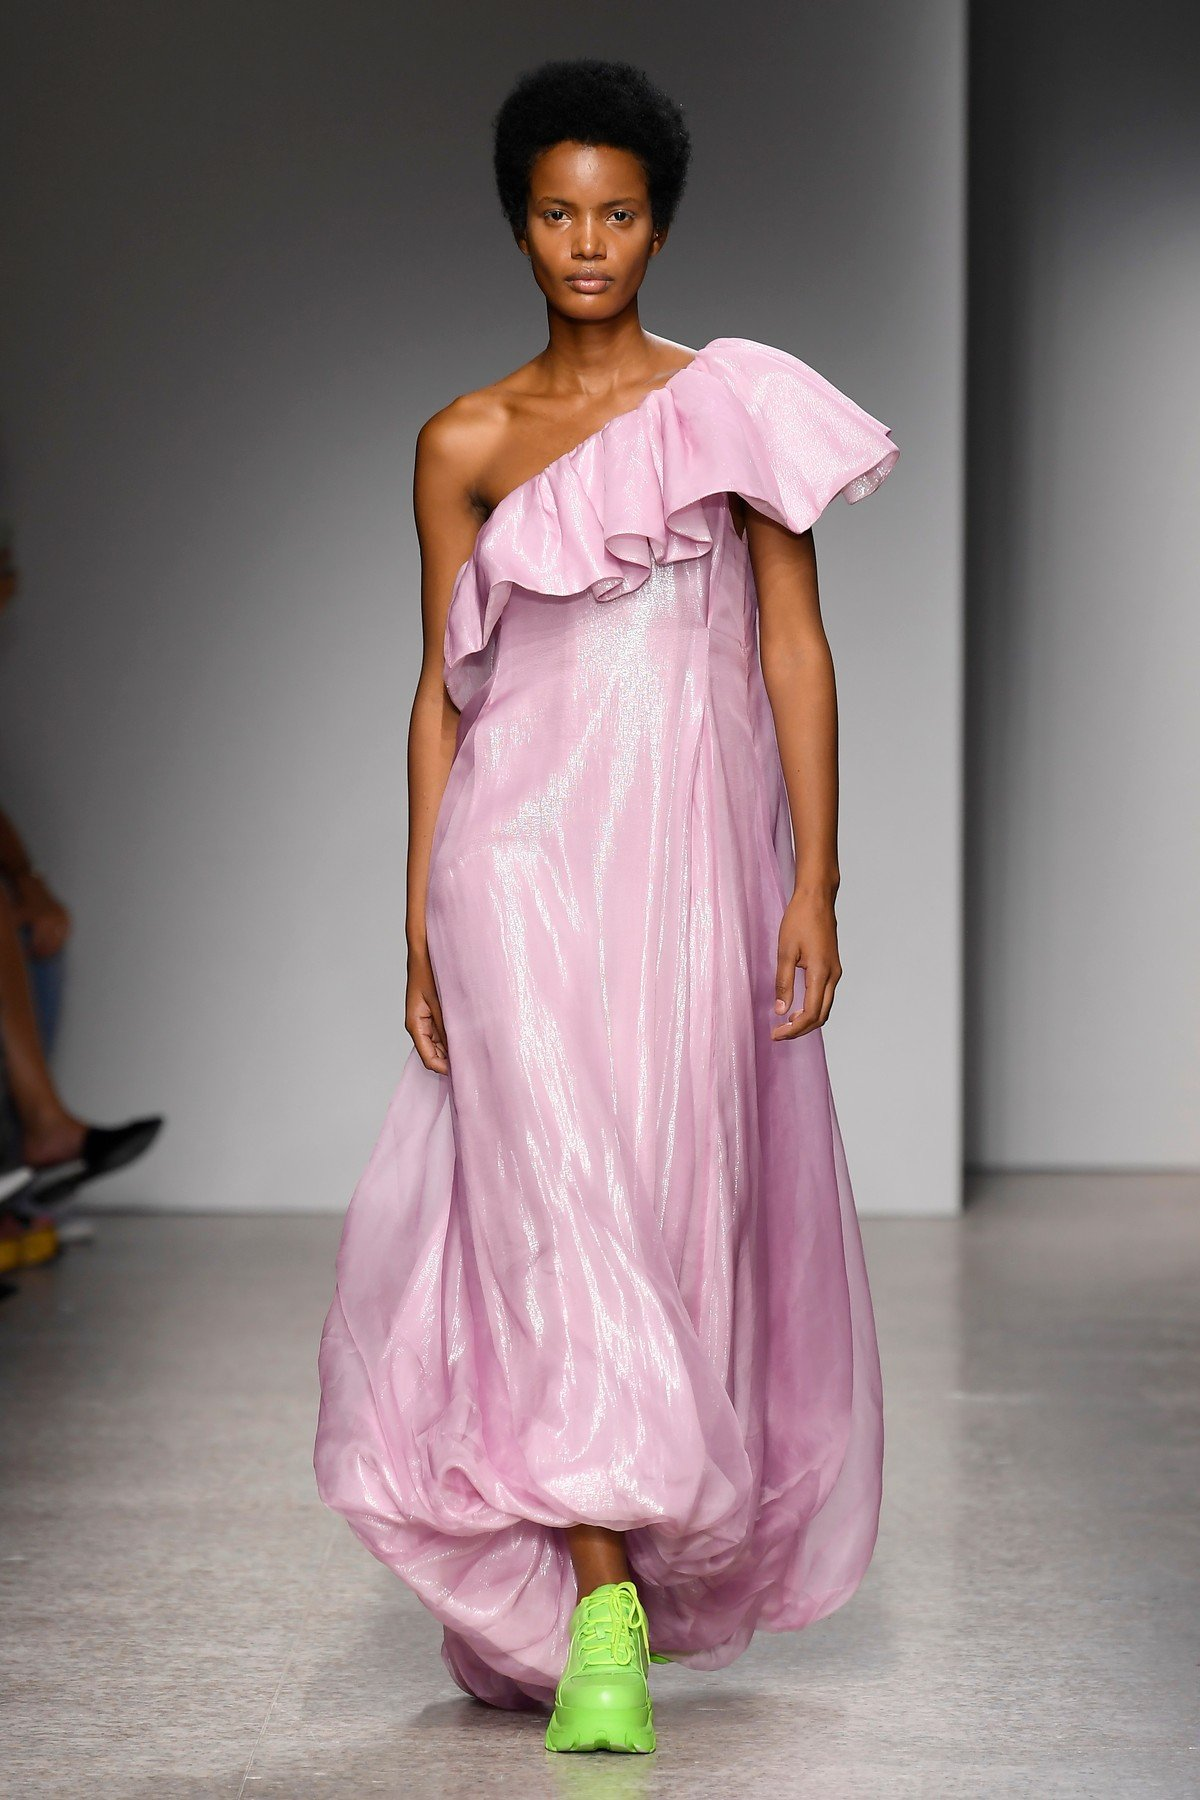 Model on the catwalk Annakiki show, Runway, Spring Summer 2019, Milan Fashion Week, Italy - 19 Sep 2018, Image: 387453476, License: Rights-managed, Restrictions: , Model Release: no, Credit line: Profimedia, TEMP Rex Features